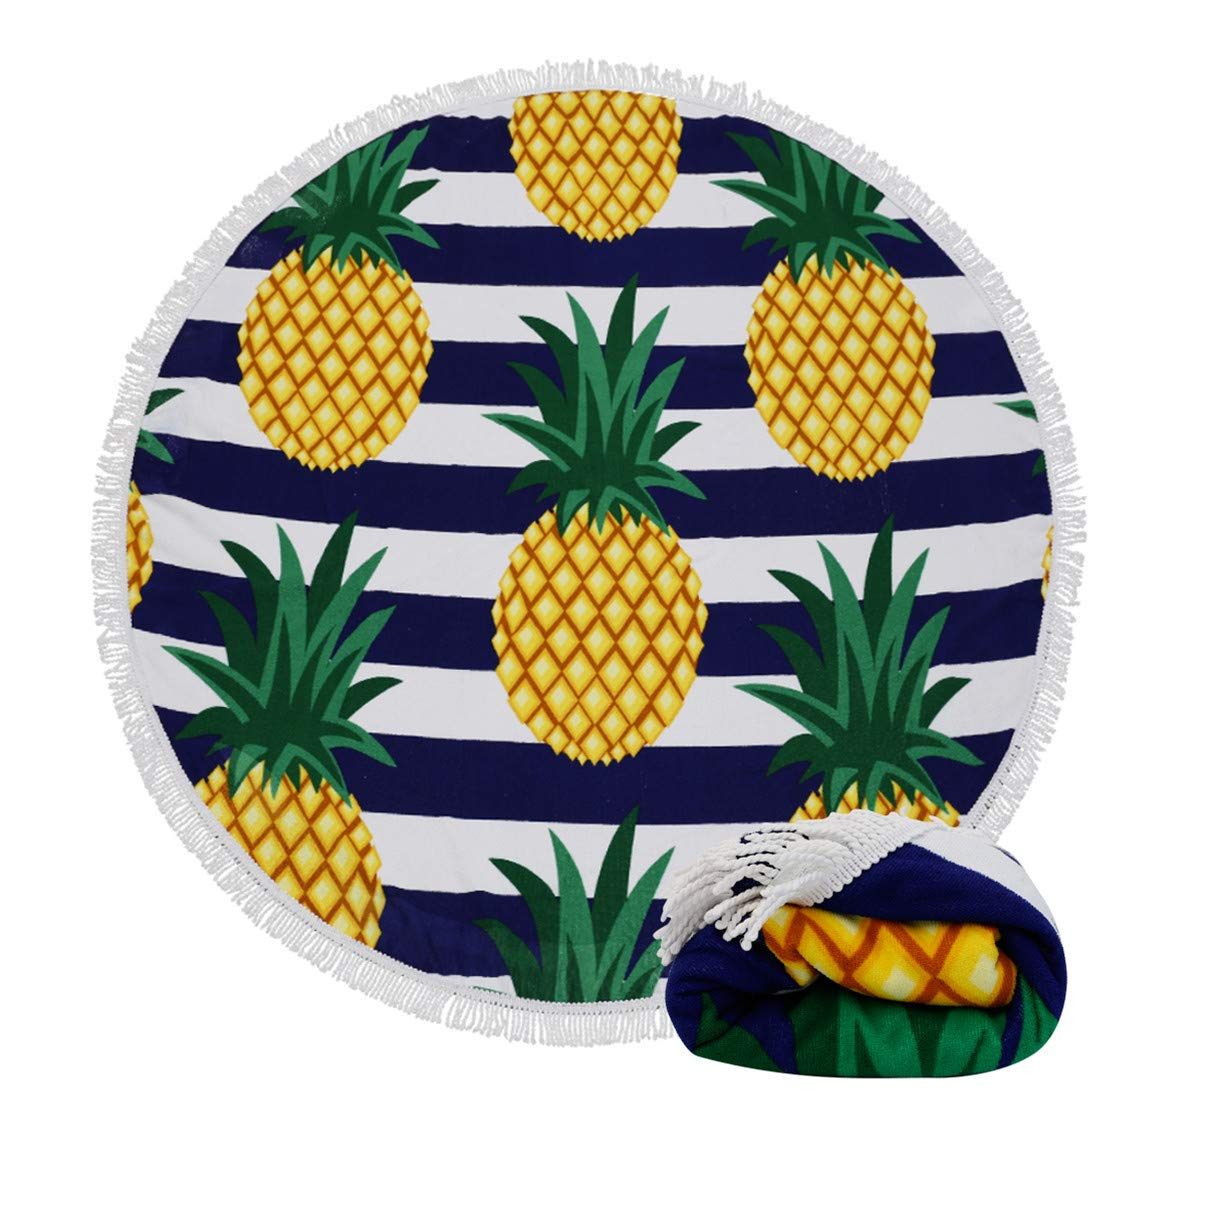 The Round Beach Towel Blanket travel product recommended by Sara Skirboll on Lifney.